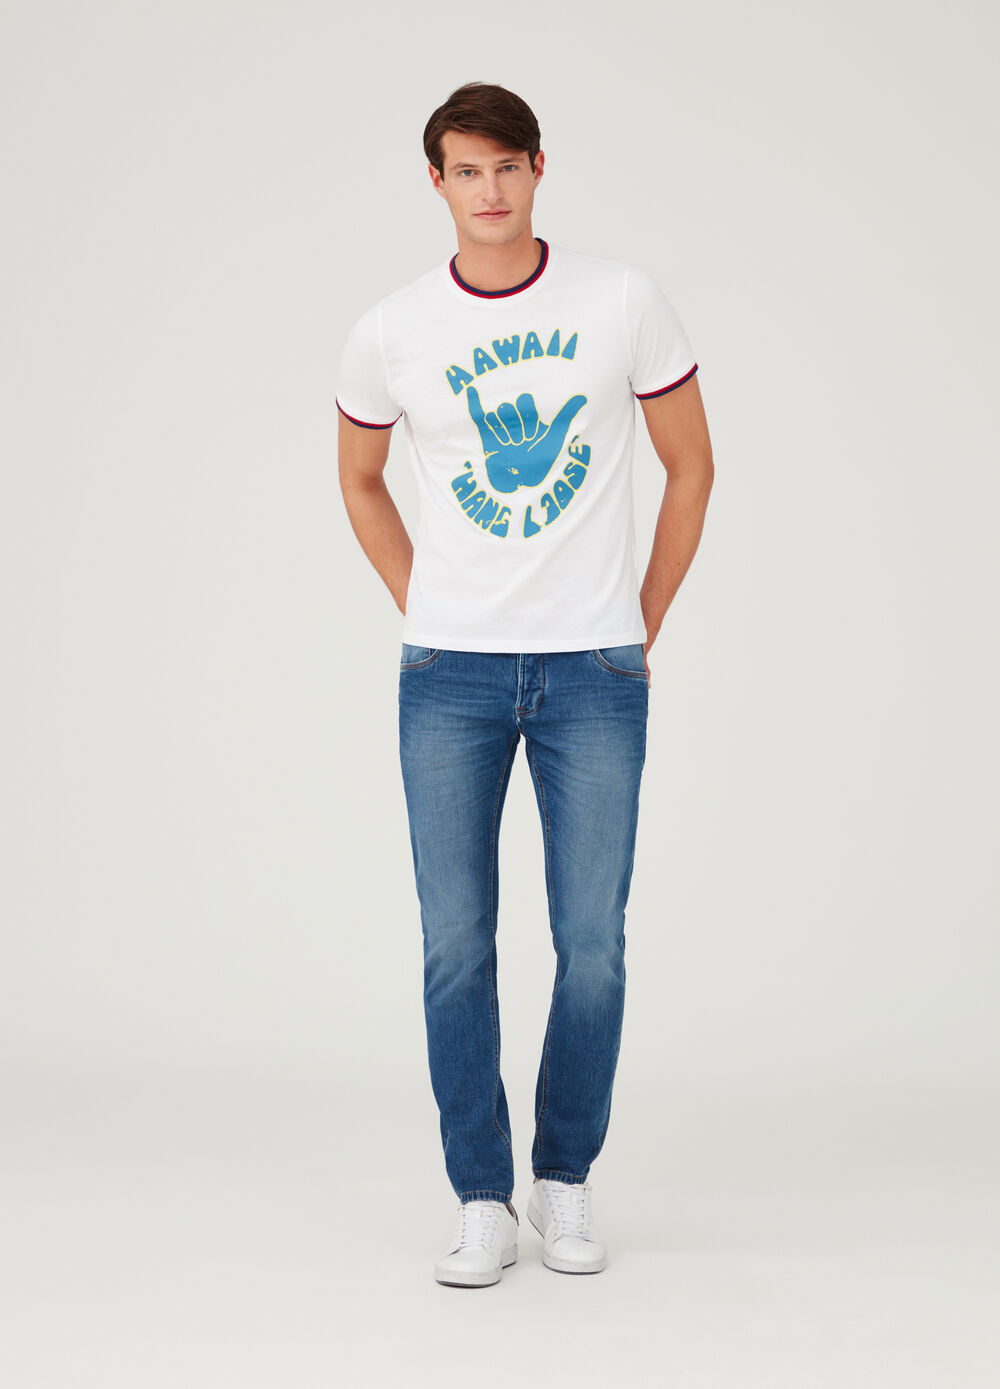 Cotton jersey T-shirt with shiny print